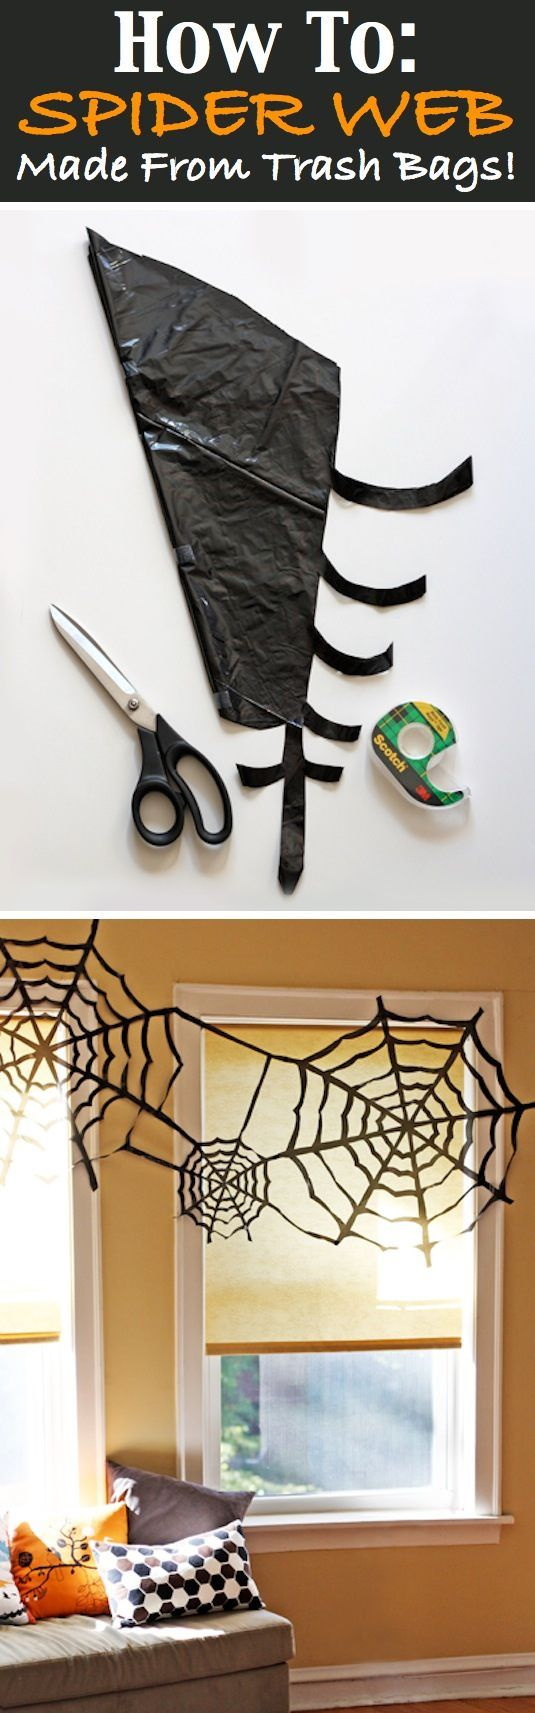 16 easy but awesome homemade halloween decorations - Halloween Crafts For The Classroom